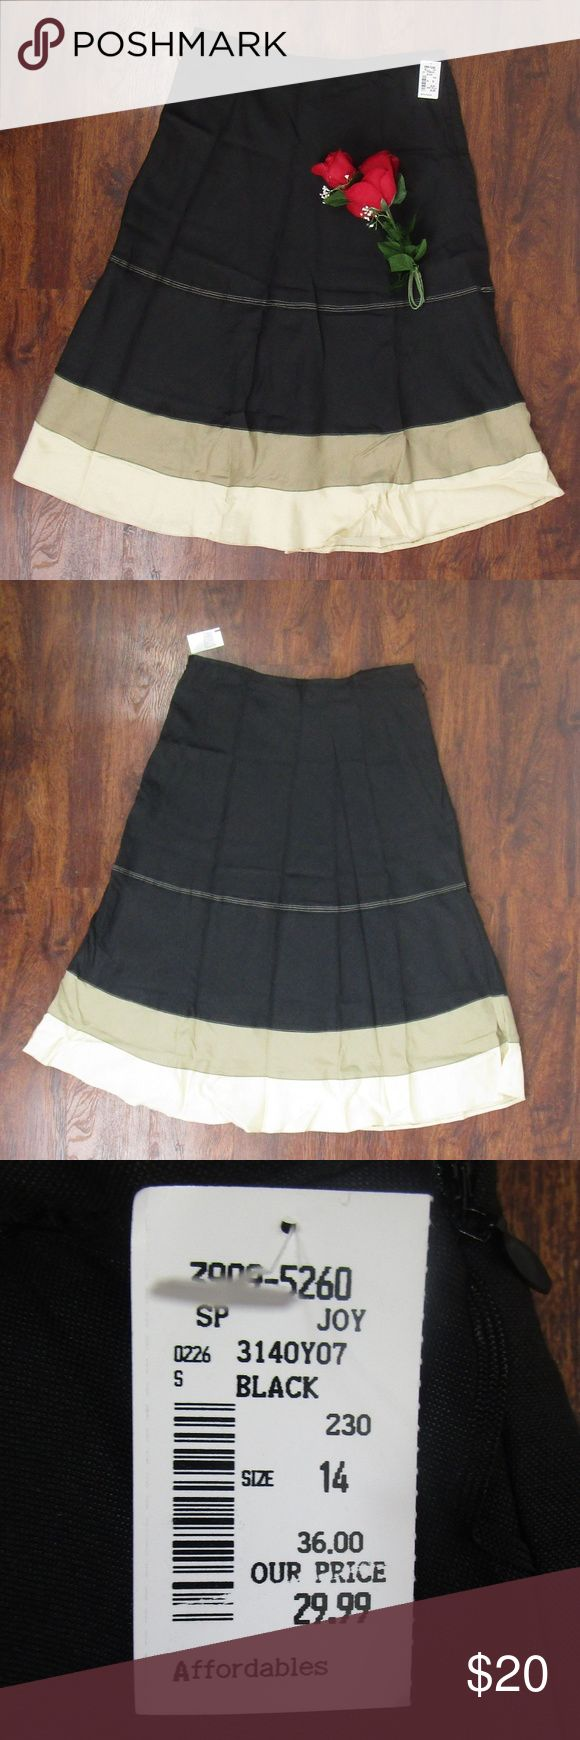 NWT Appraisal Black Tan Maxi Skirt Size 14 This beautiful skirt is new with tags! As always offers and bundles are welcome. Feel free to add one or more items to a bundle for a private discount offer!!!  Waist is 16.75 inches across Hips are 23 inches across Length is 31.5 inches Appraisal Skirts Maxi